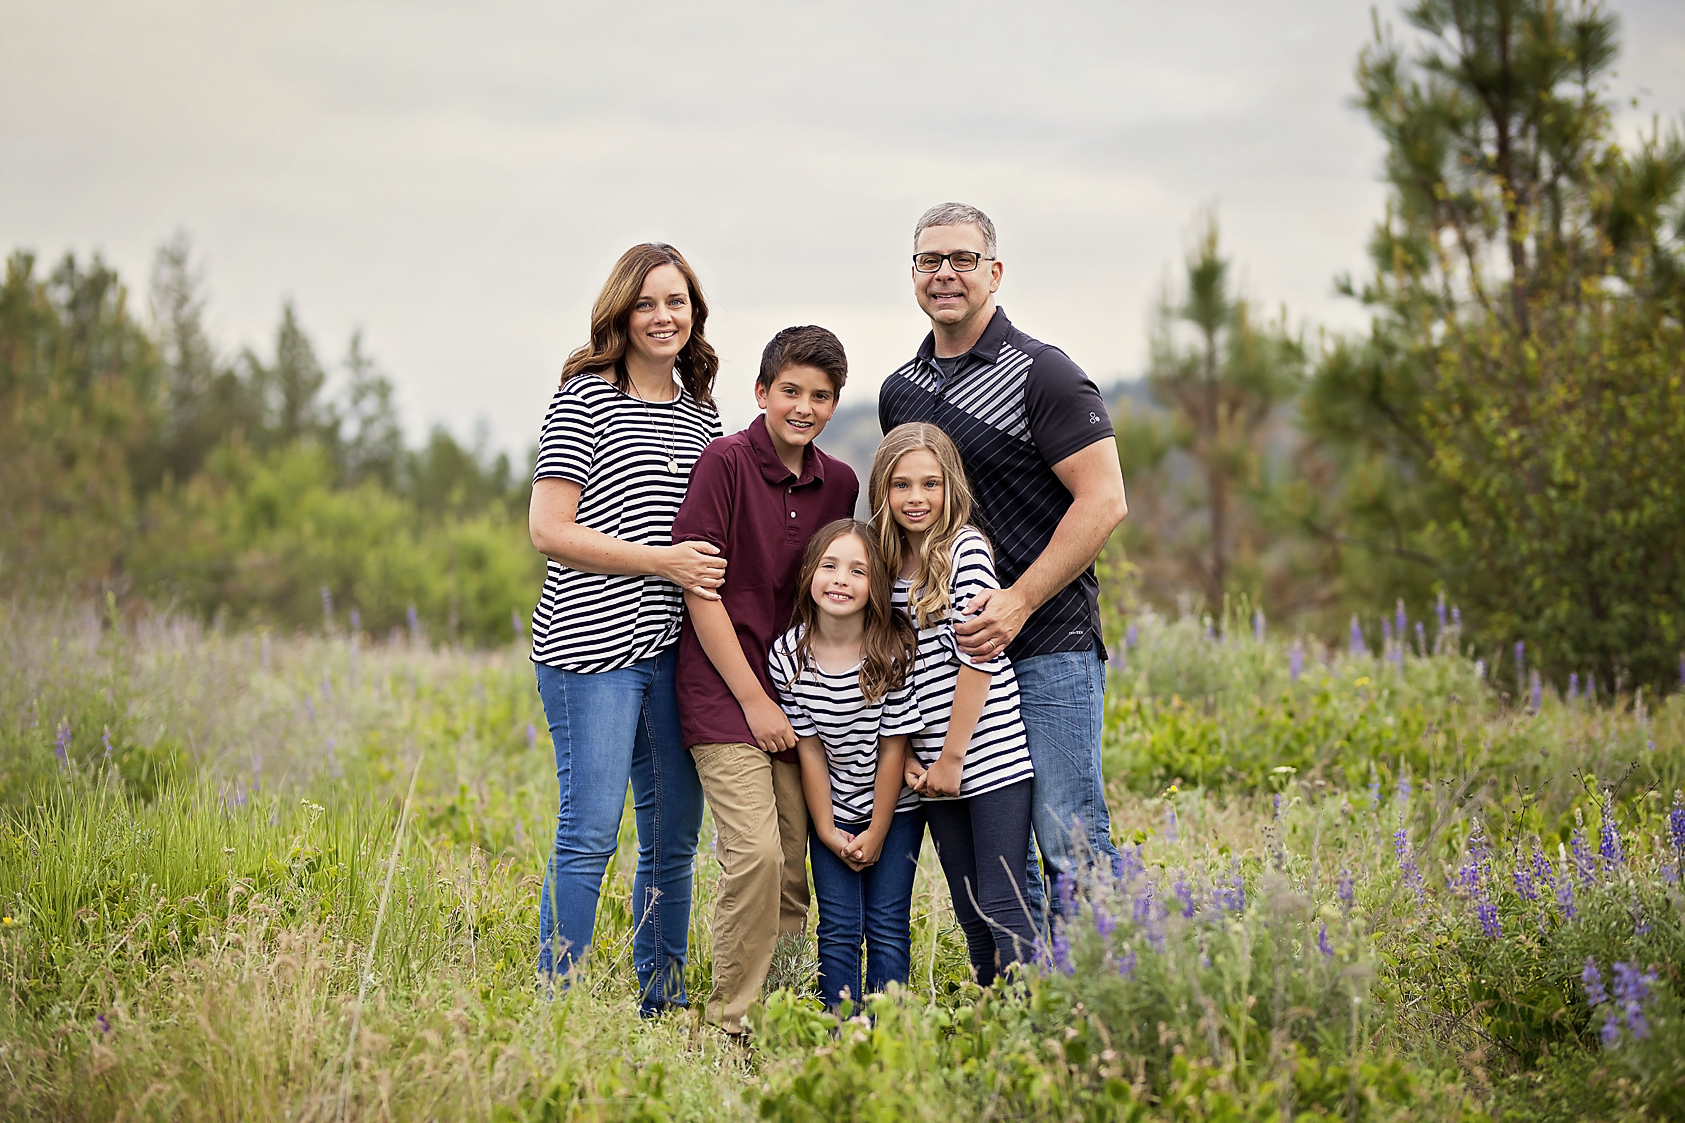 Medical Lake Family Photos in a field